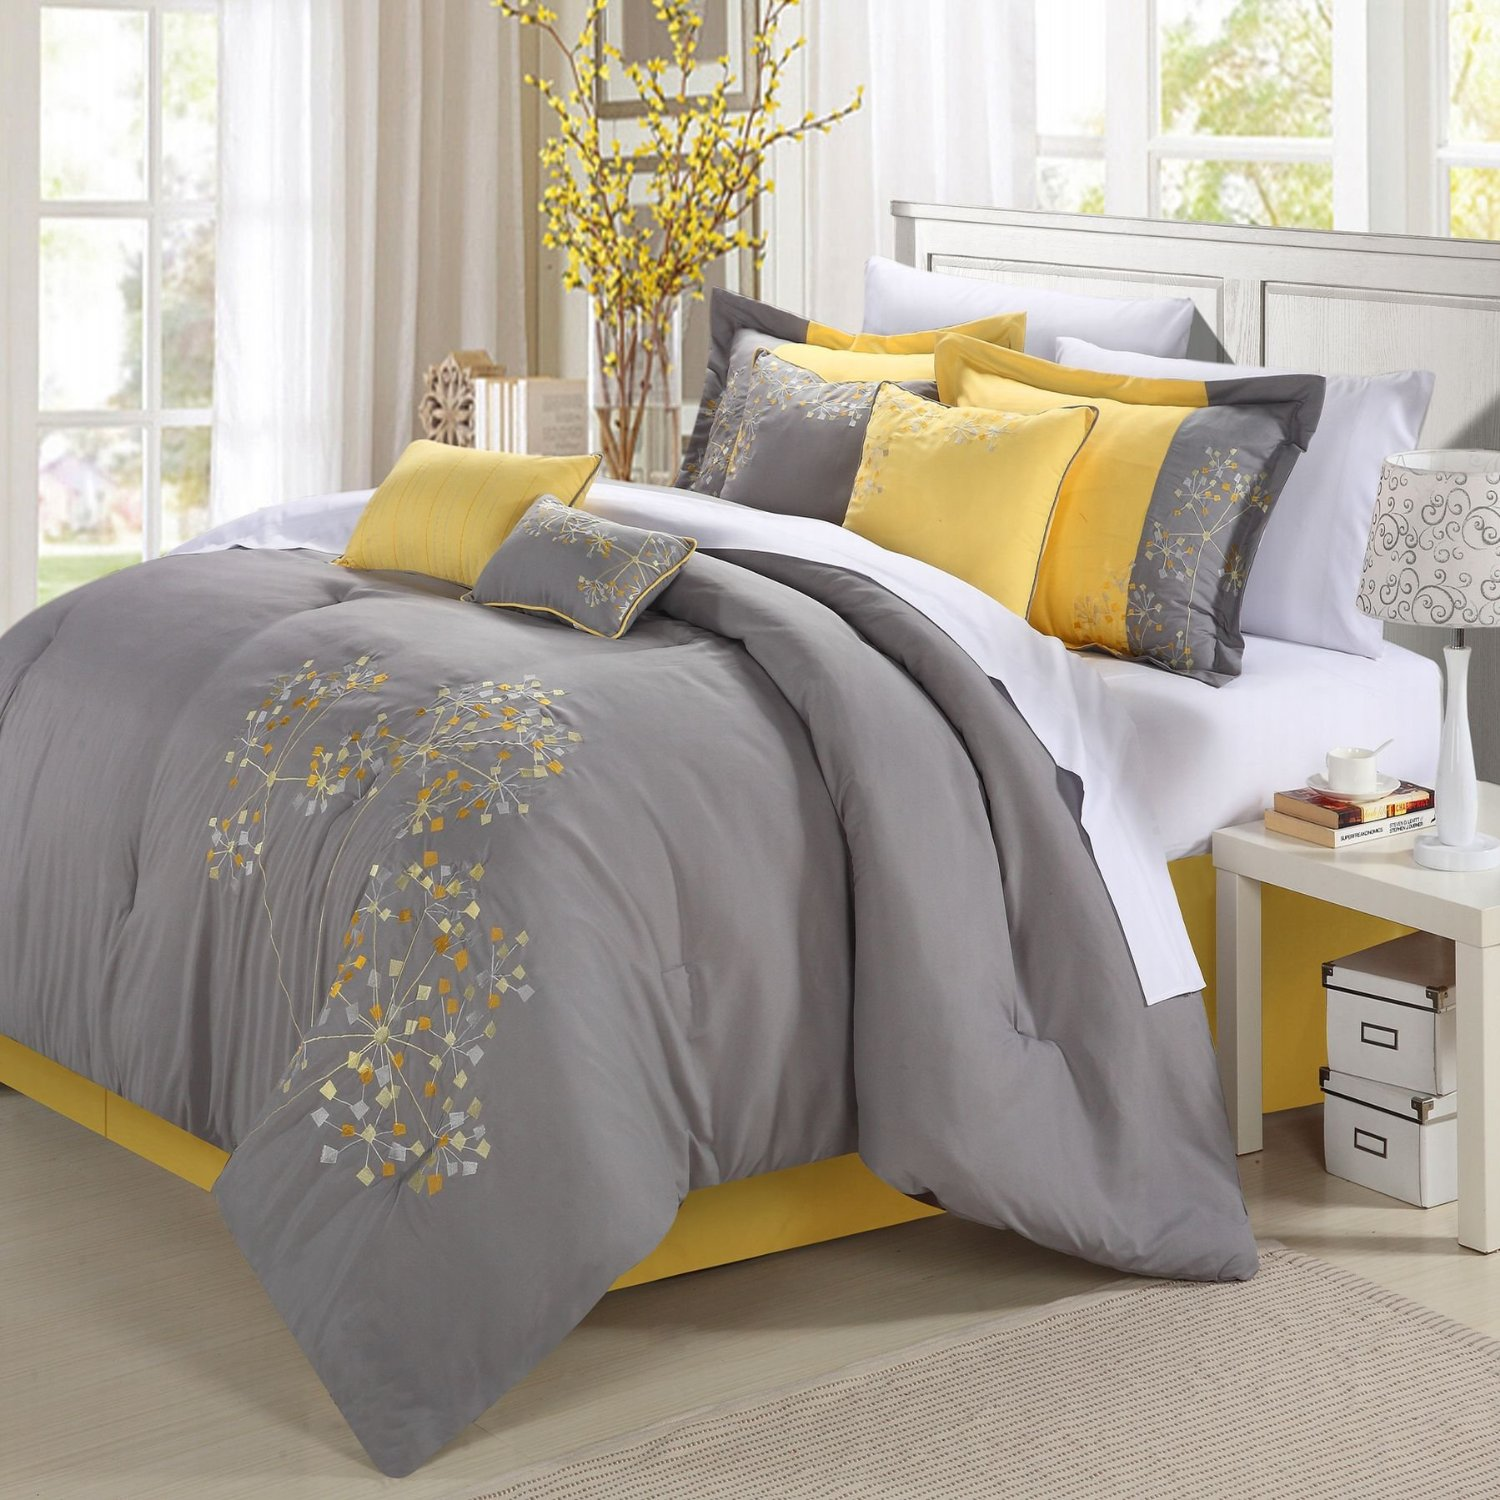 Image of: Yellow and Grey Comforter Target